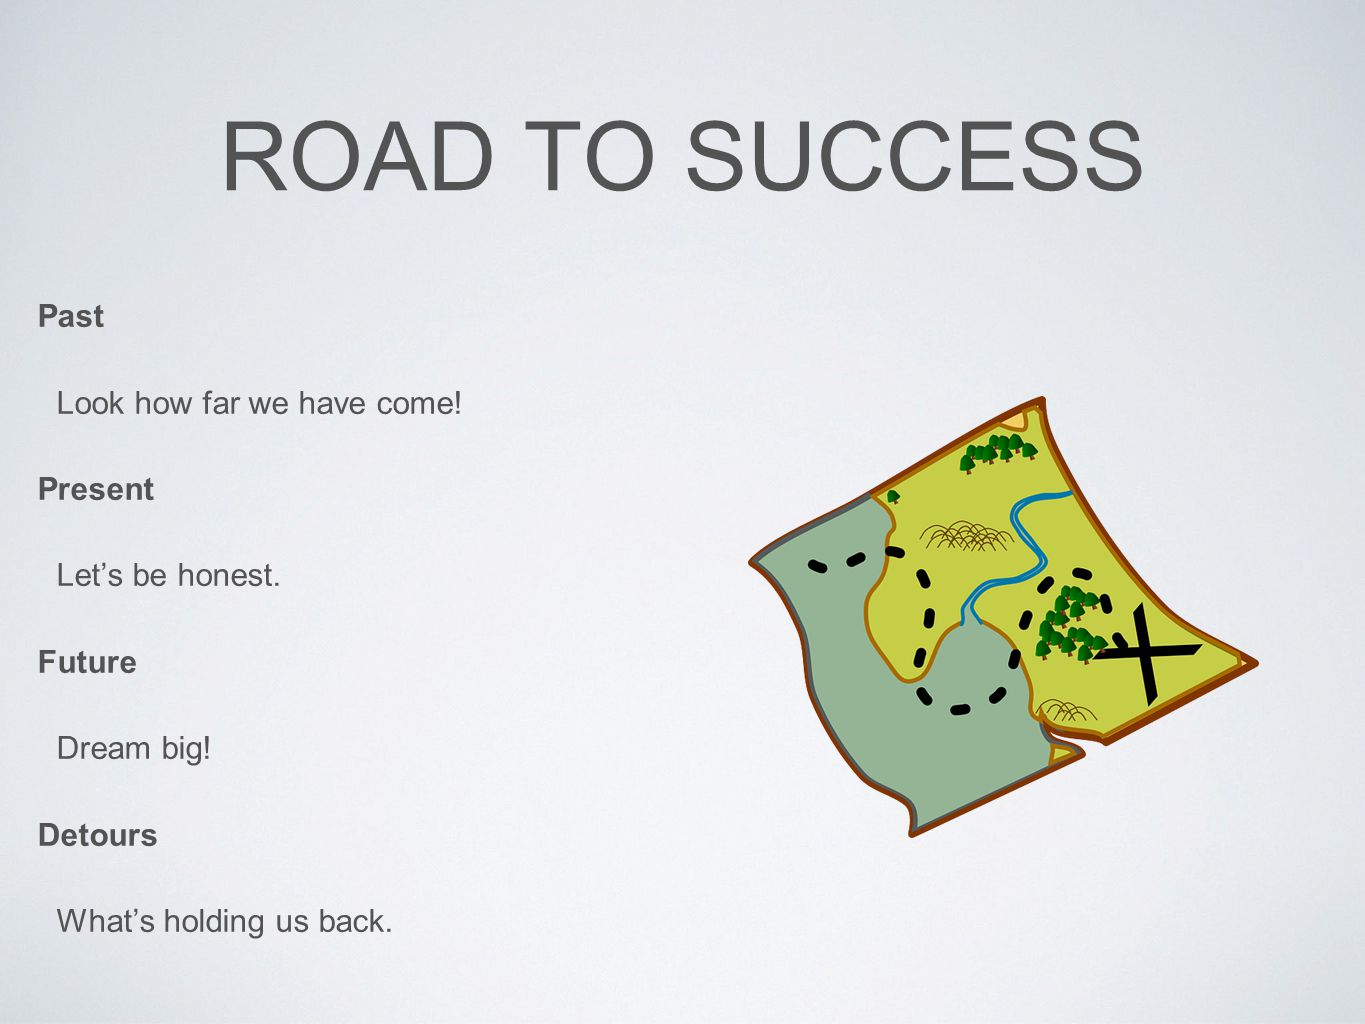 Road to success Past Look how far we have come! Present